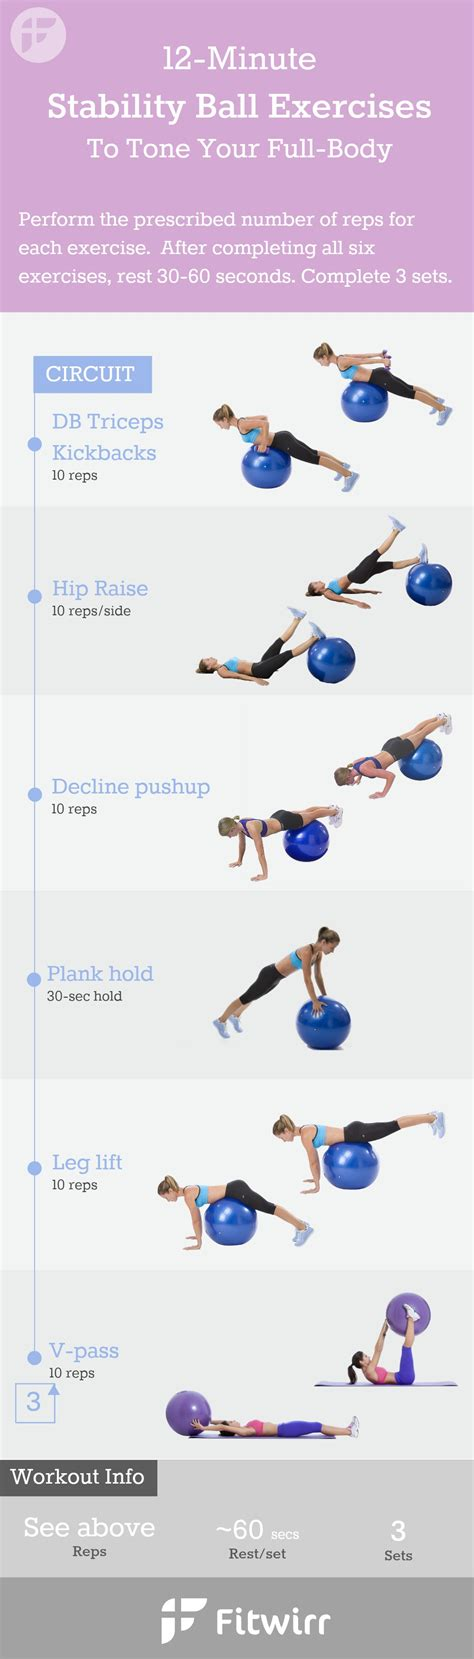 printable exercise ball routines stability ball exercises 12 min at home workout